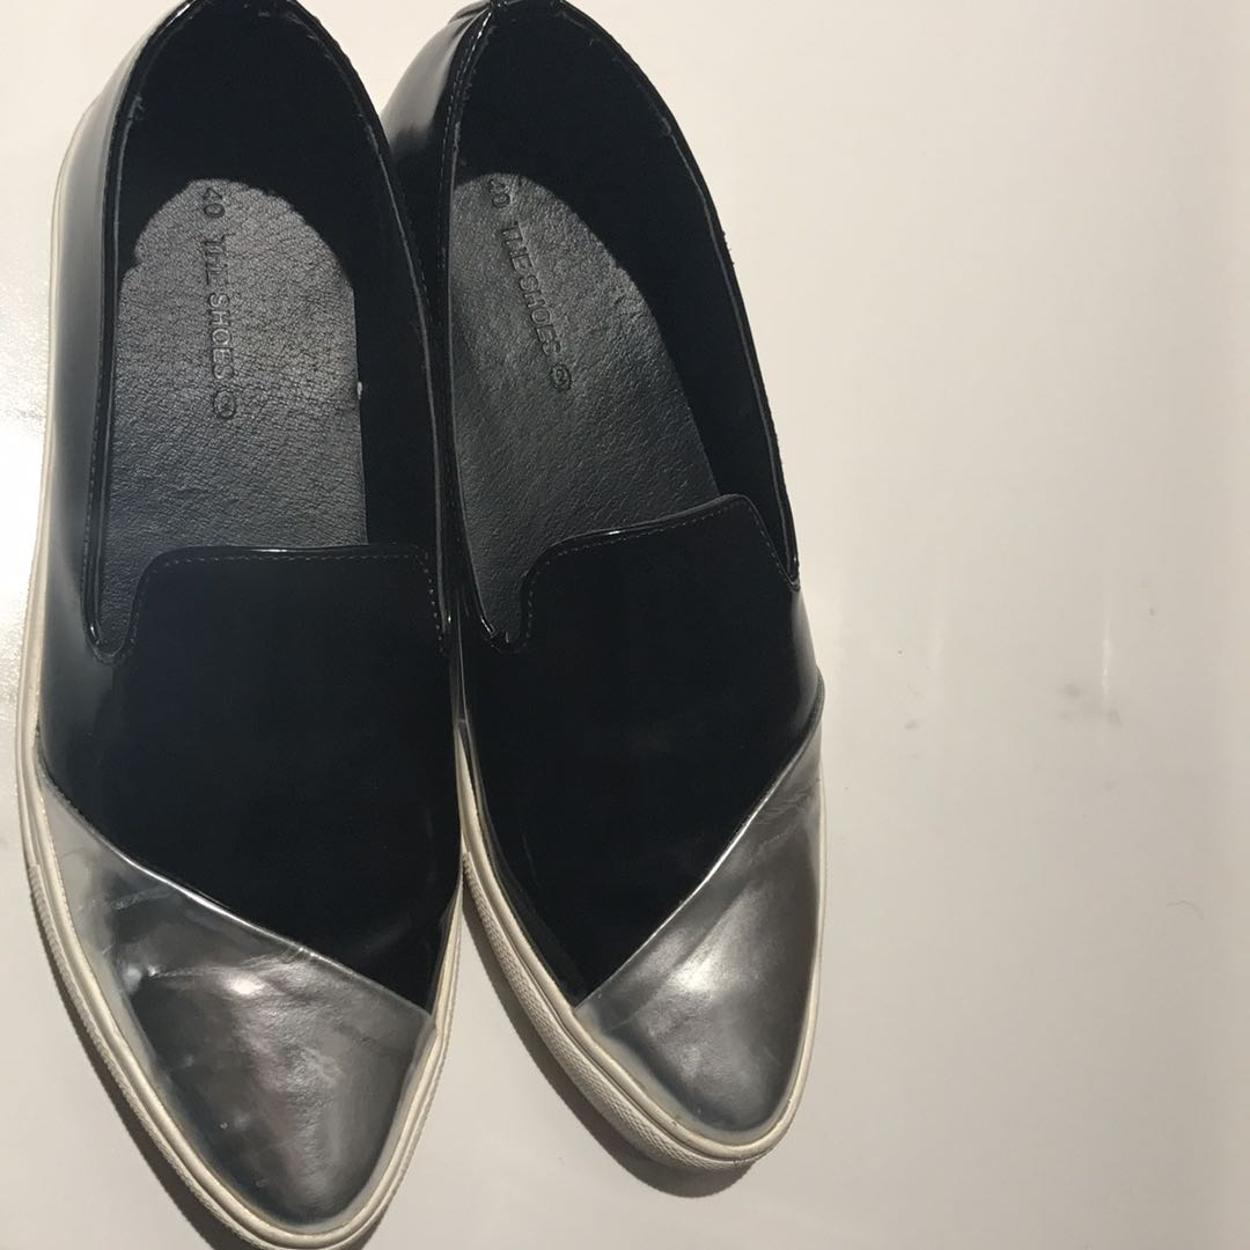 C&A Oxford/Loafer